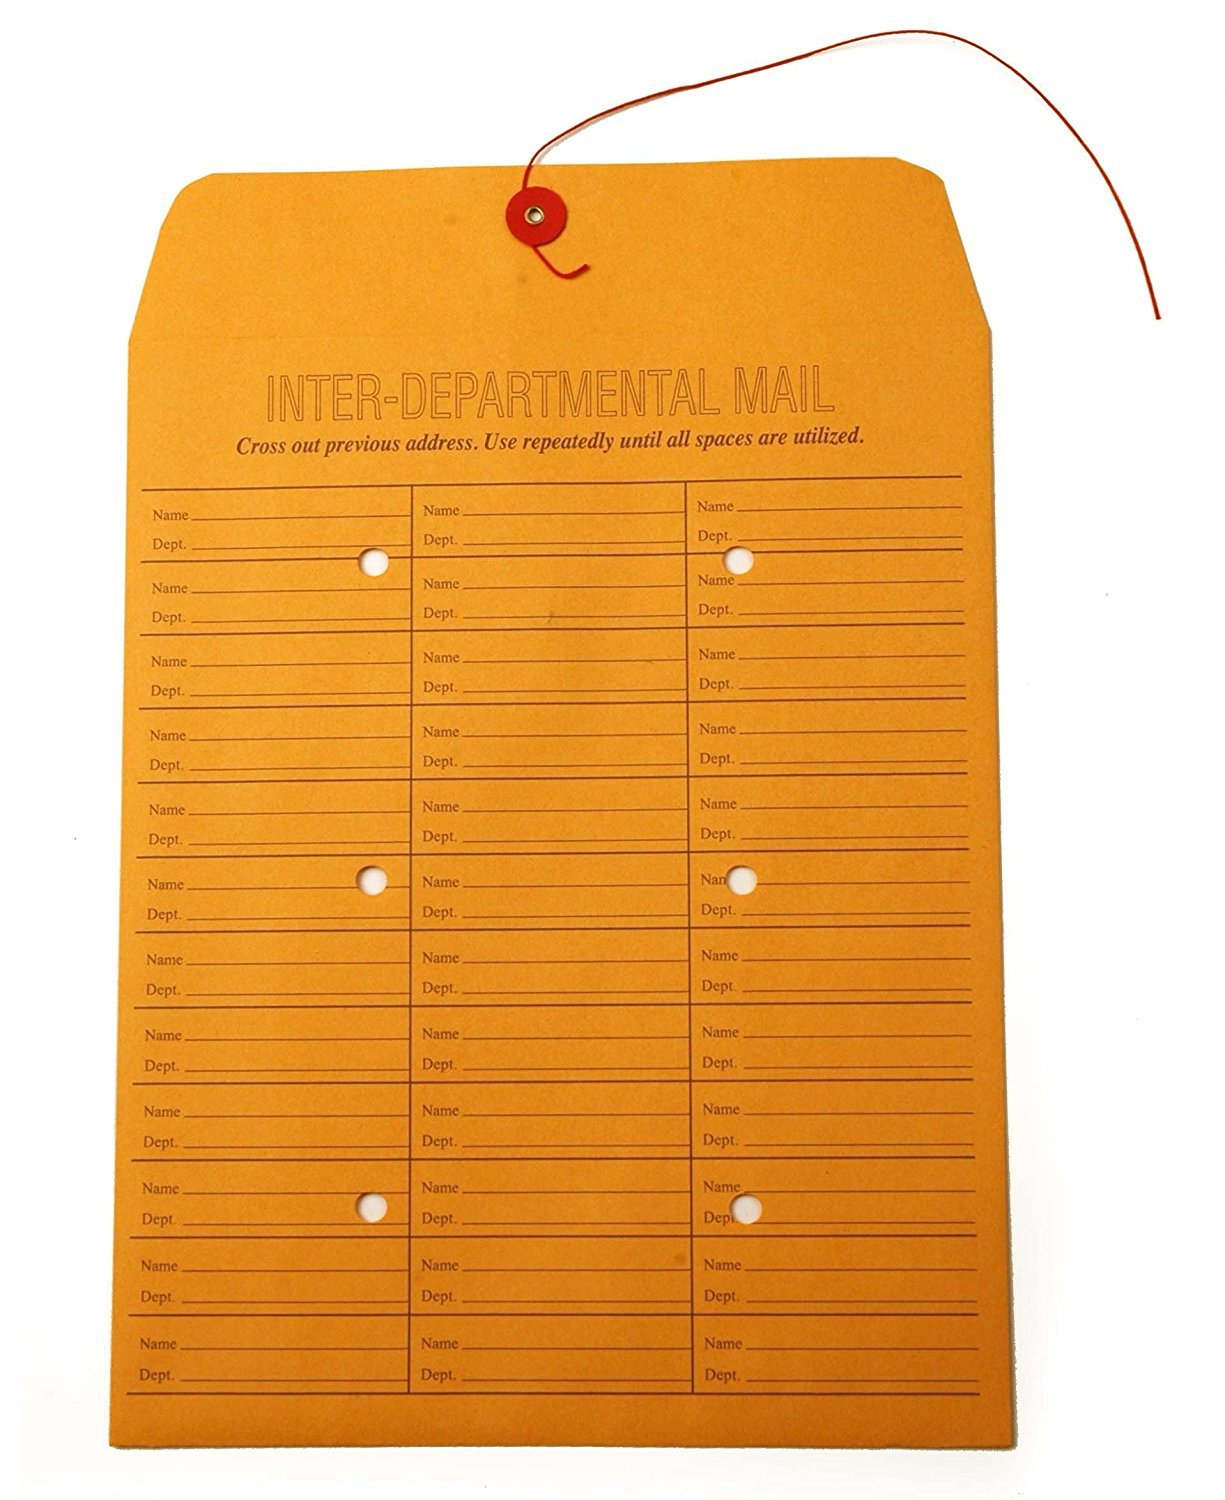 Quality String-Tie Jumbo Size Inter-Department Envelopes, 12 x 16 Inches, 25 per Pack, Printed Both Sides - 71 Entries